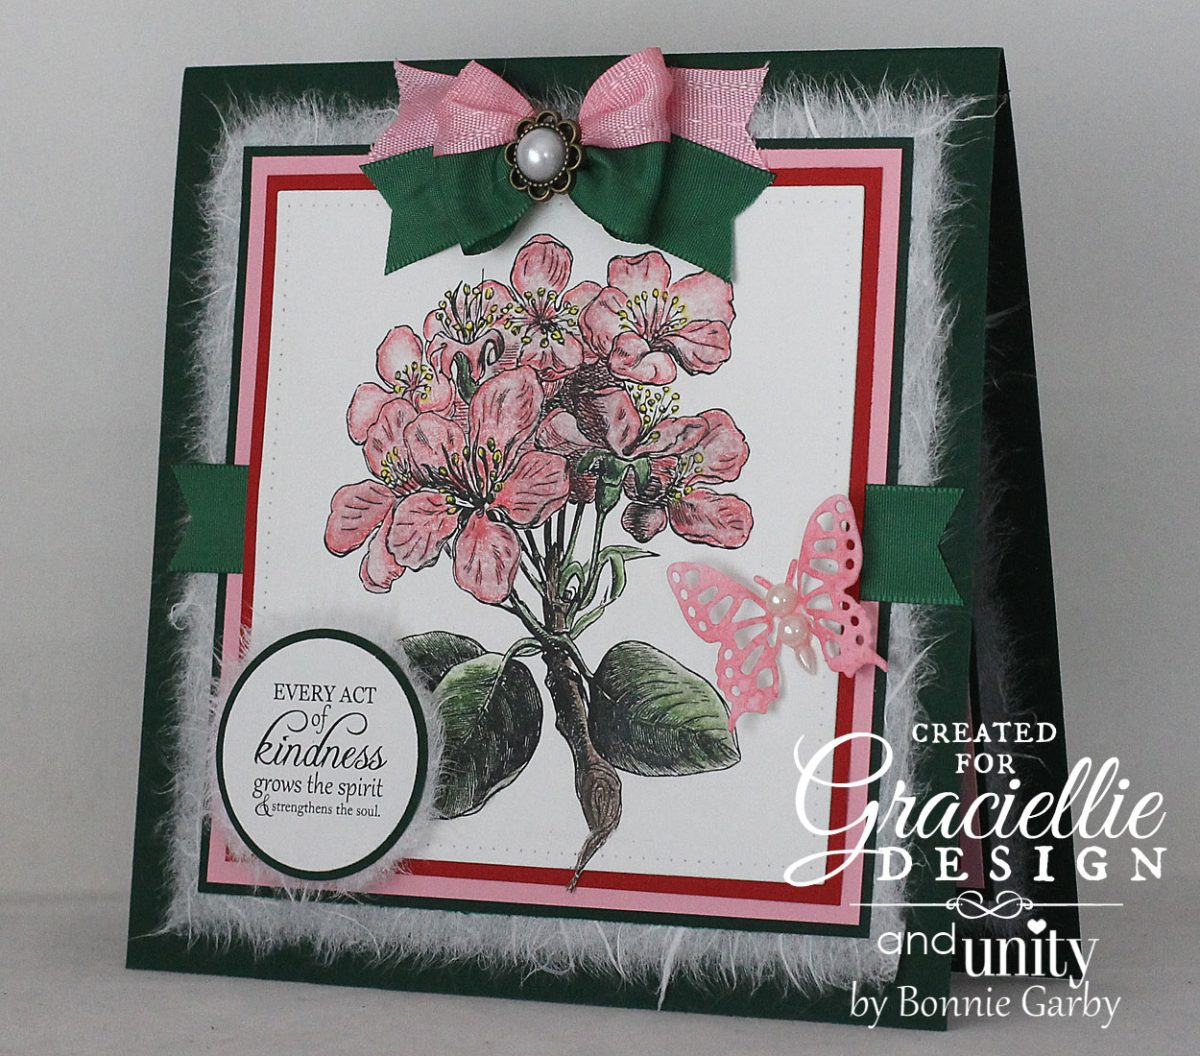 Blog Hopping with Graciellie Design and Unity Stamp Company